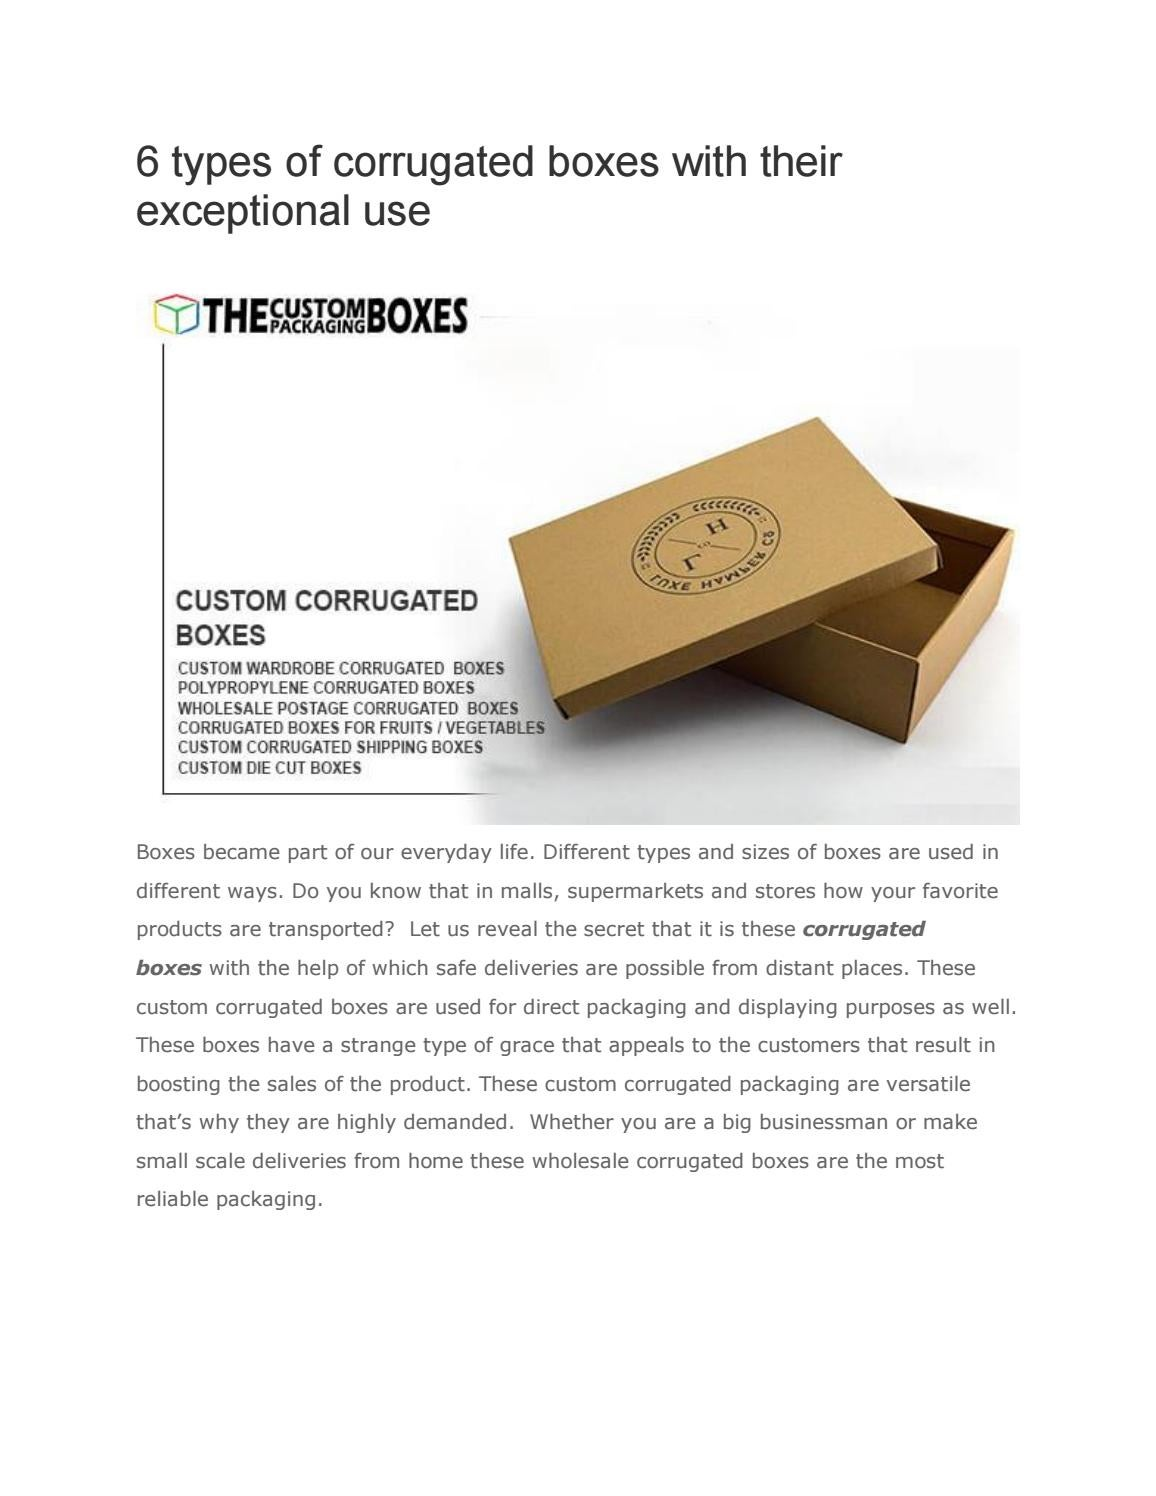 6 types of corrugated boxes with their exceptional use by